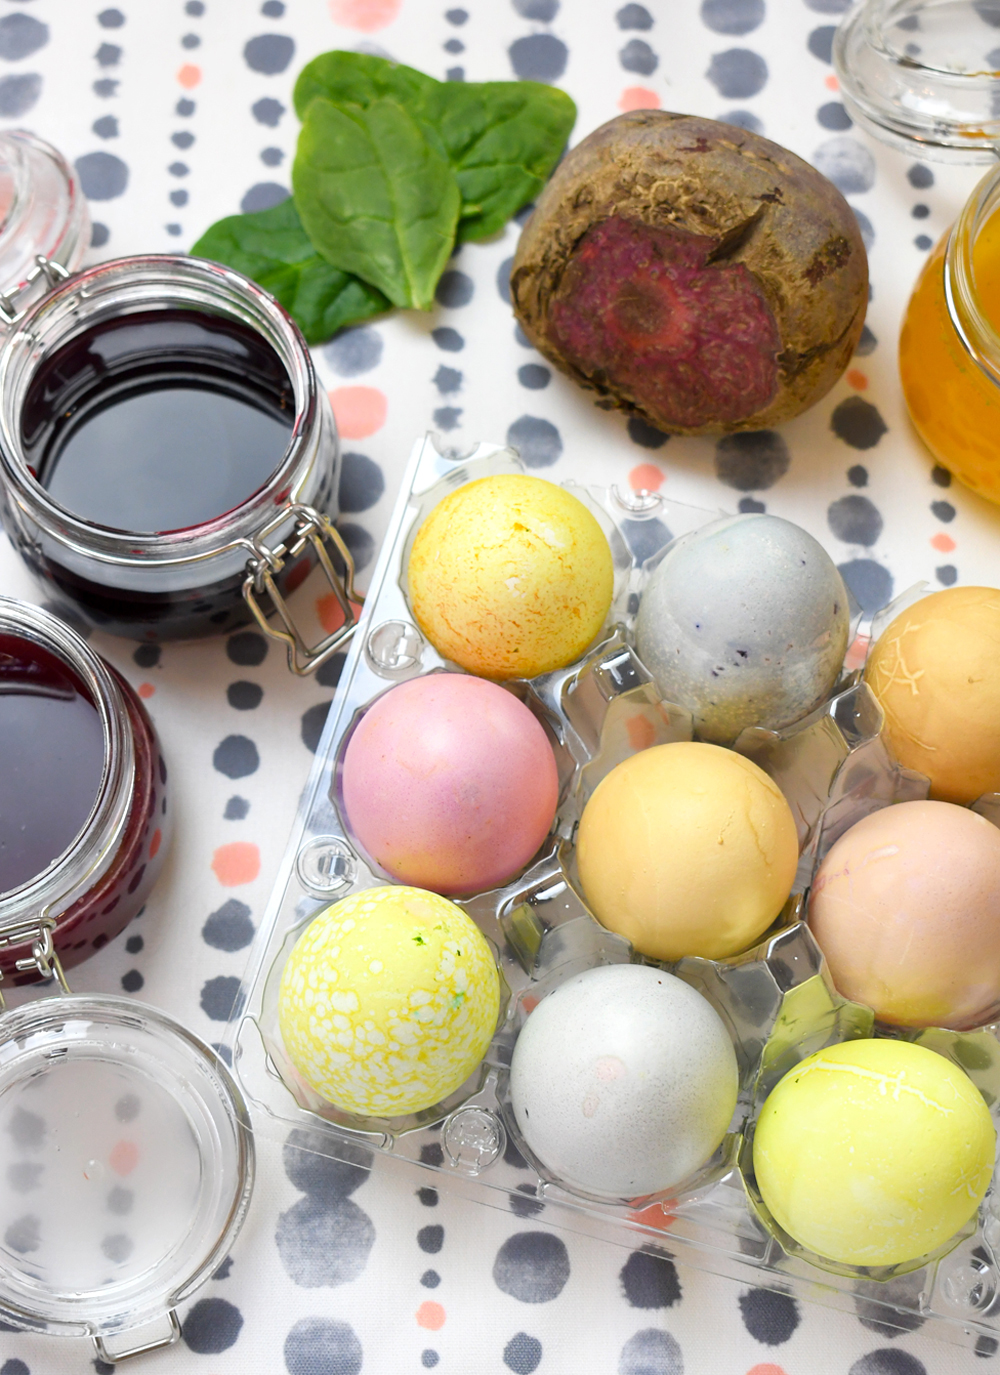 How to Color Easter Eggs Using Natural Dyes